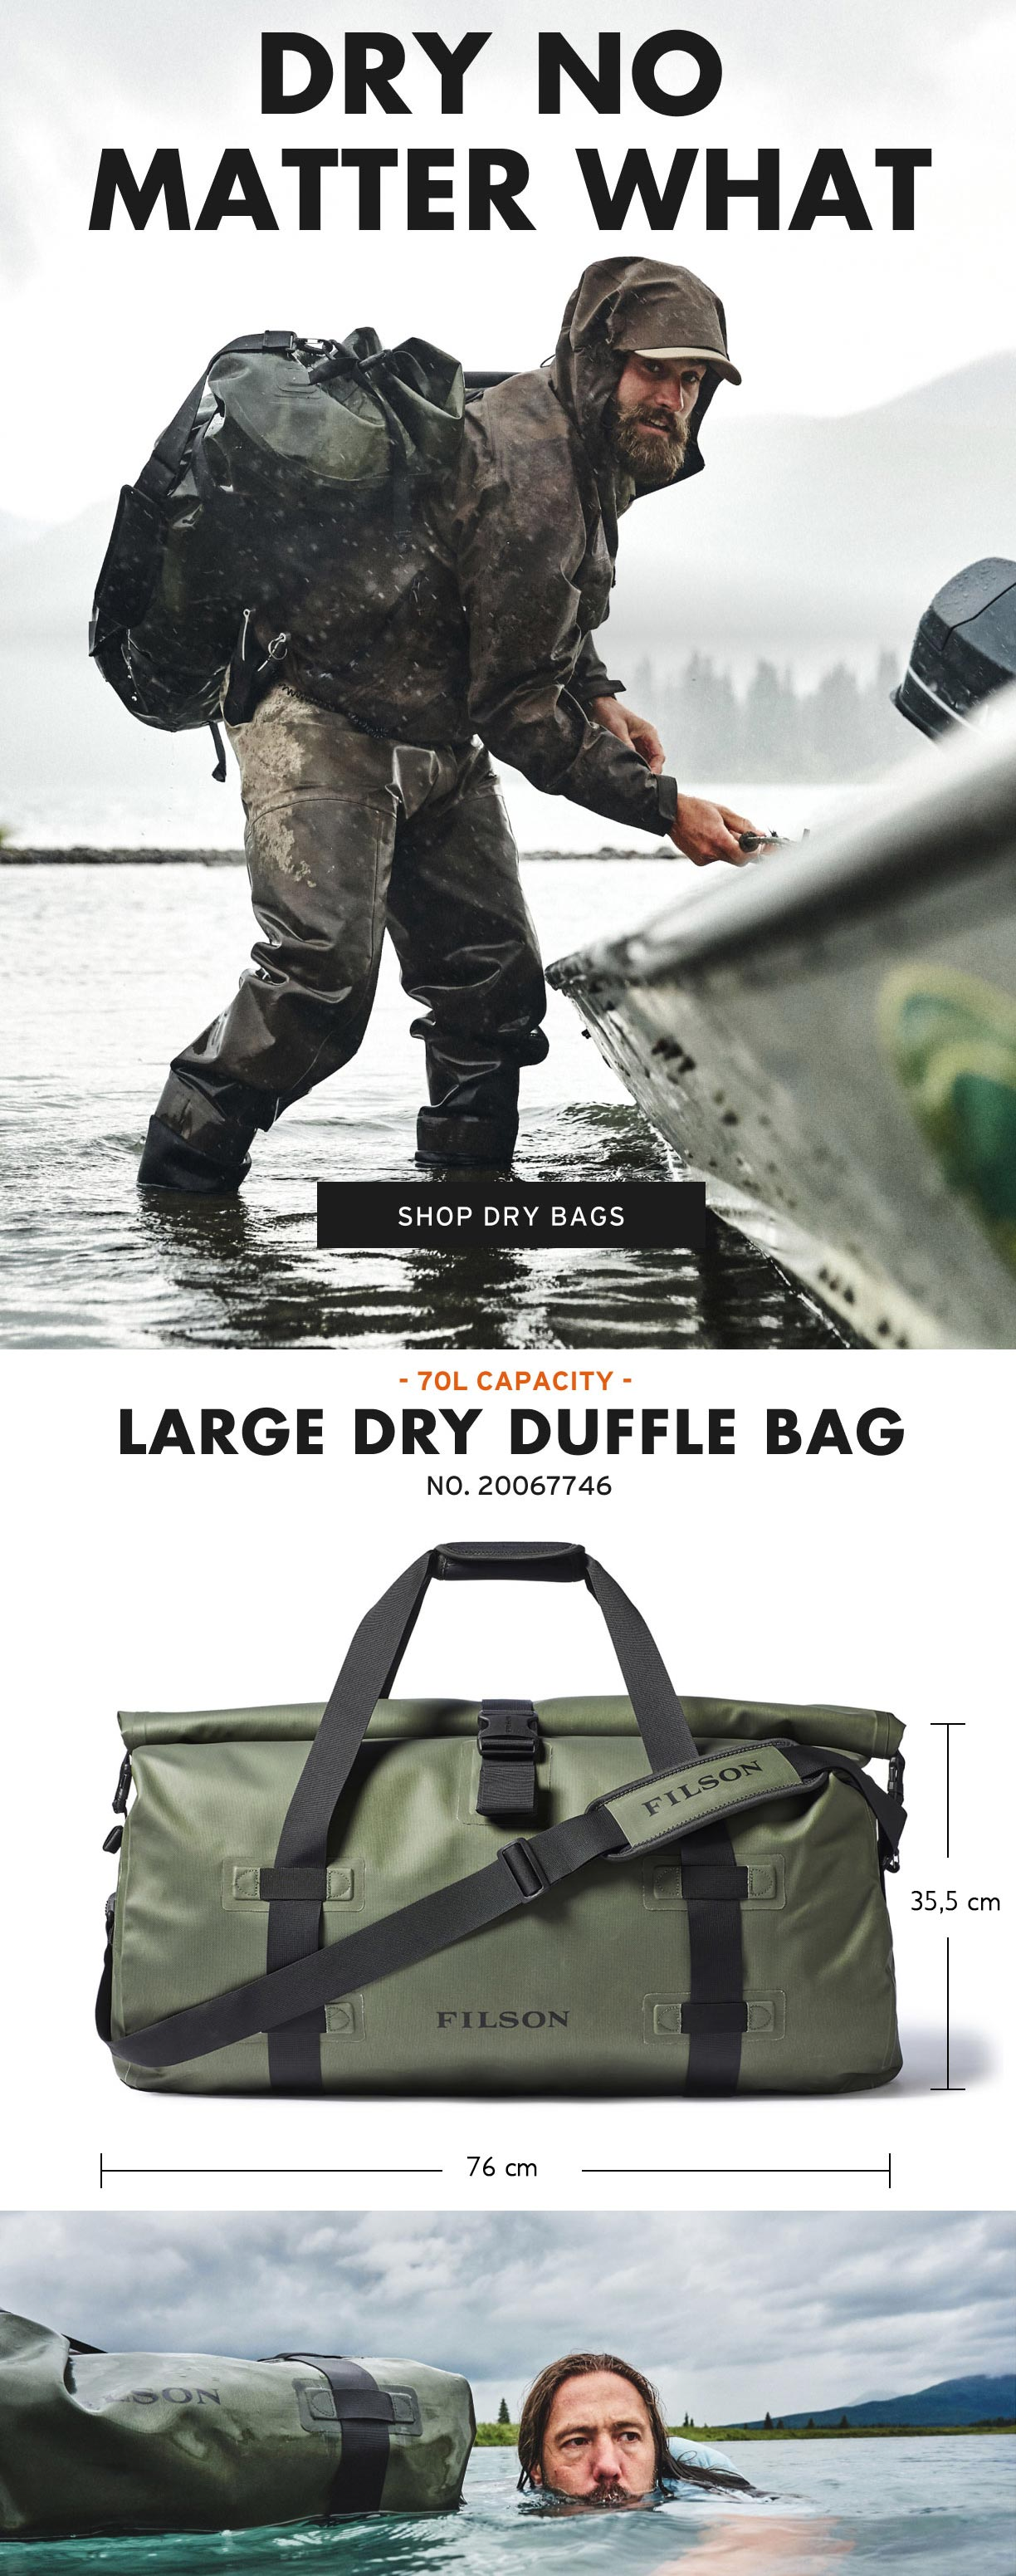 Filson Dry Duffle Large Productinformation